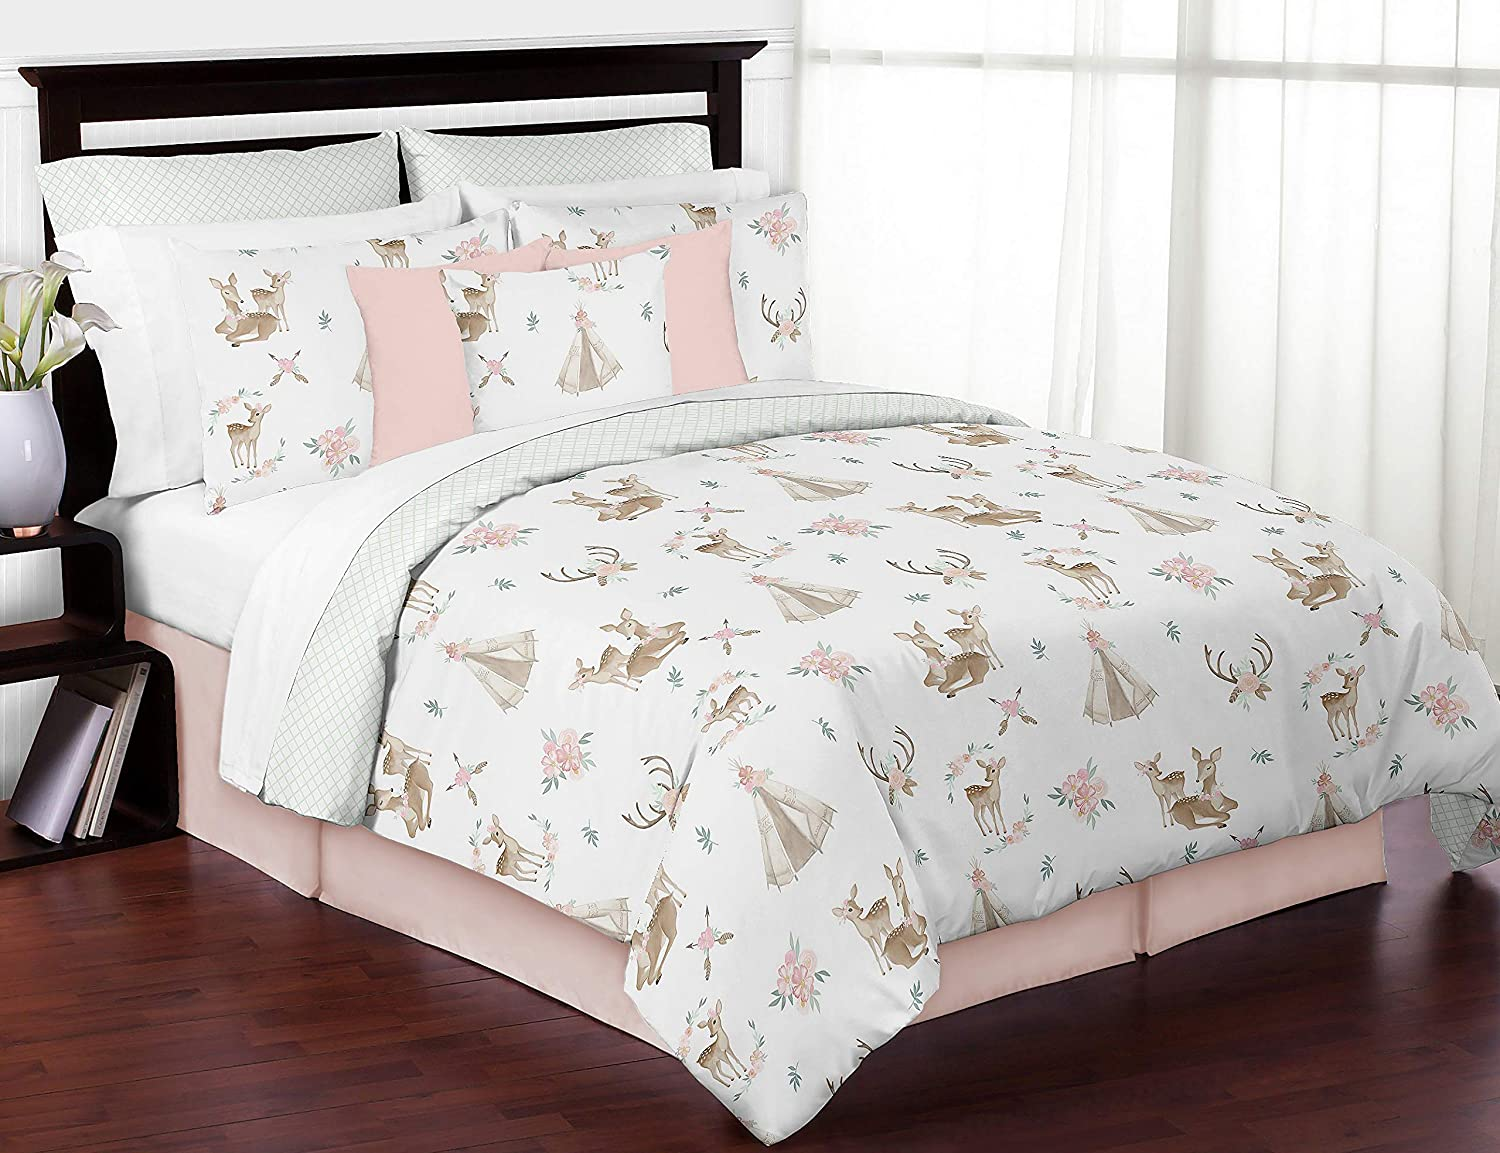 Sweet Jojo Designs Blush Pink, Mint Green and White Boho Watercolor Woodland Deer Floral Girl Full/Queen Kid Teen Bedding Comforter Set - 3 Pieces